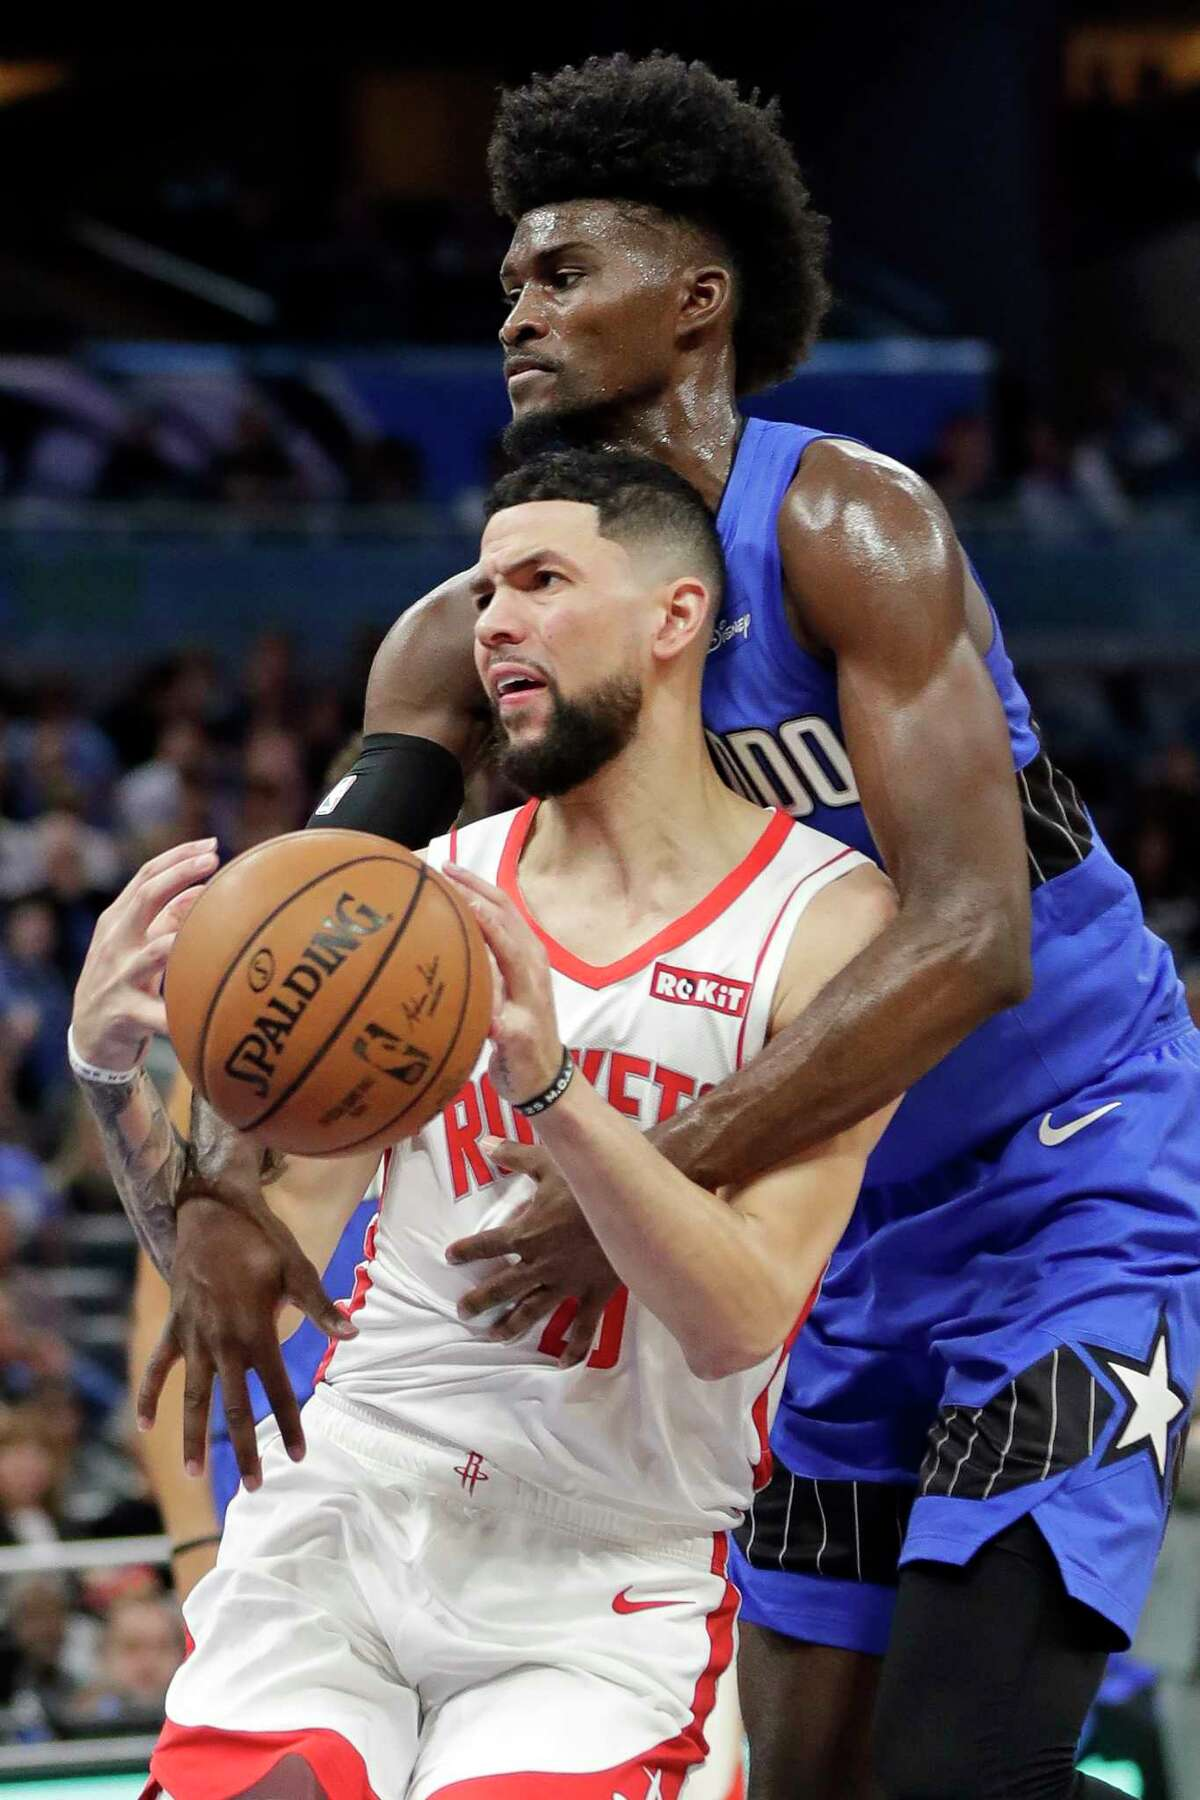 Orlando Magic's Jonathan Isaac, right, fouls Houston Rockets' Austin Rivers as he goes to the basket during the first half of an NBA basketball game, Friday, Dec. 13, 2019, in Orlando, Fla. (AP Photo/John Raoux)